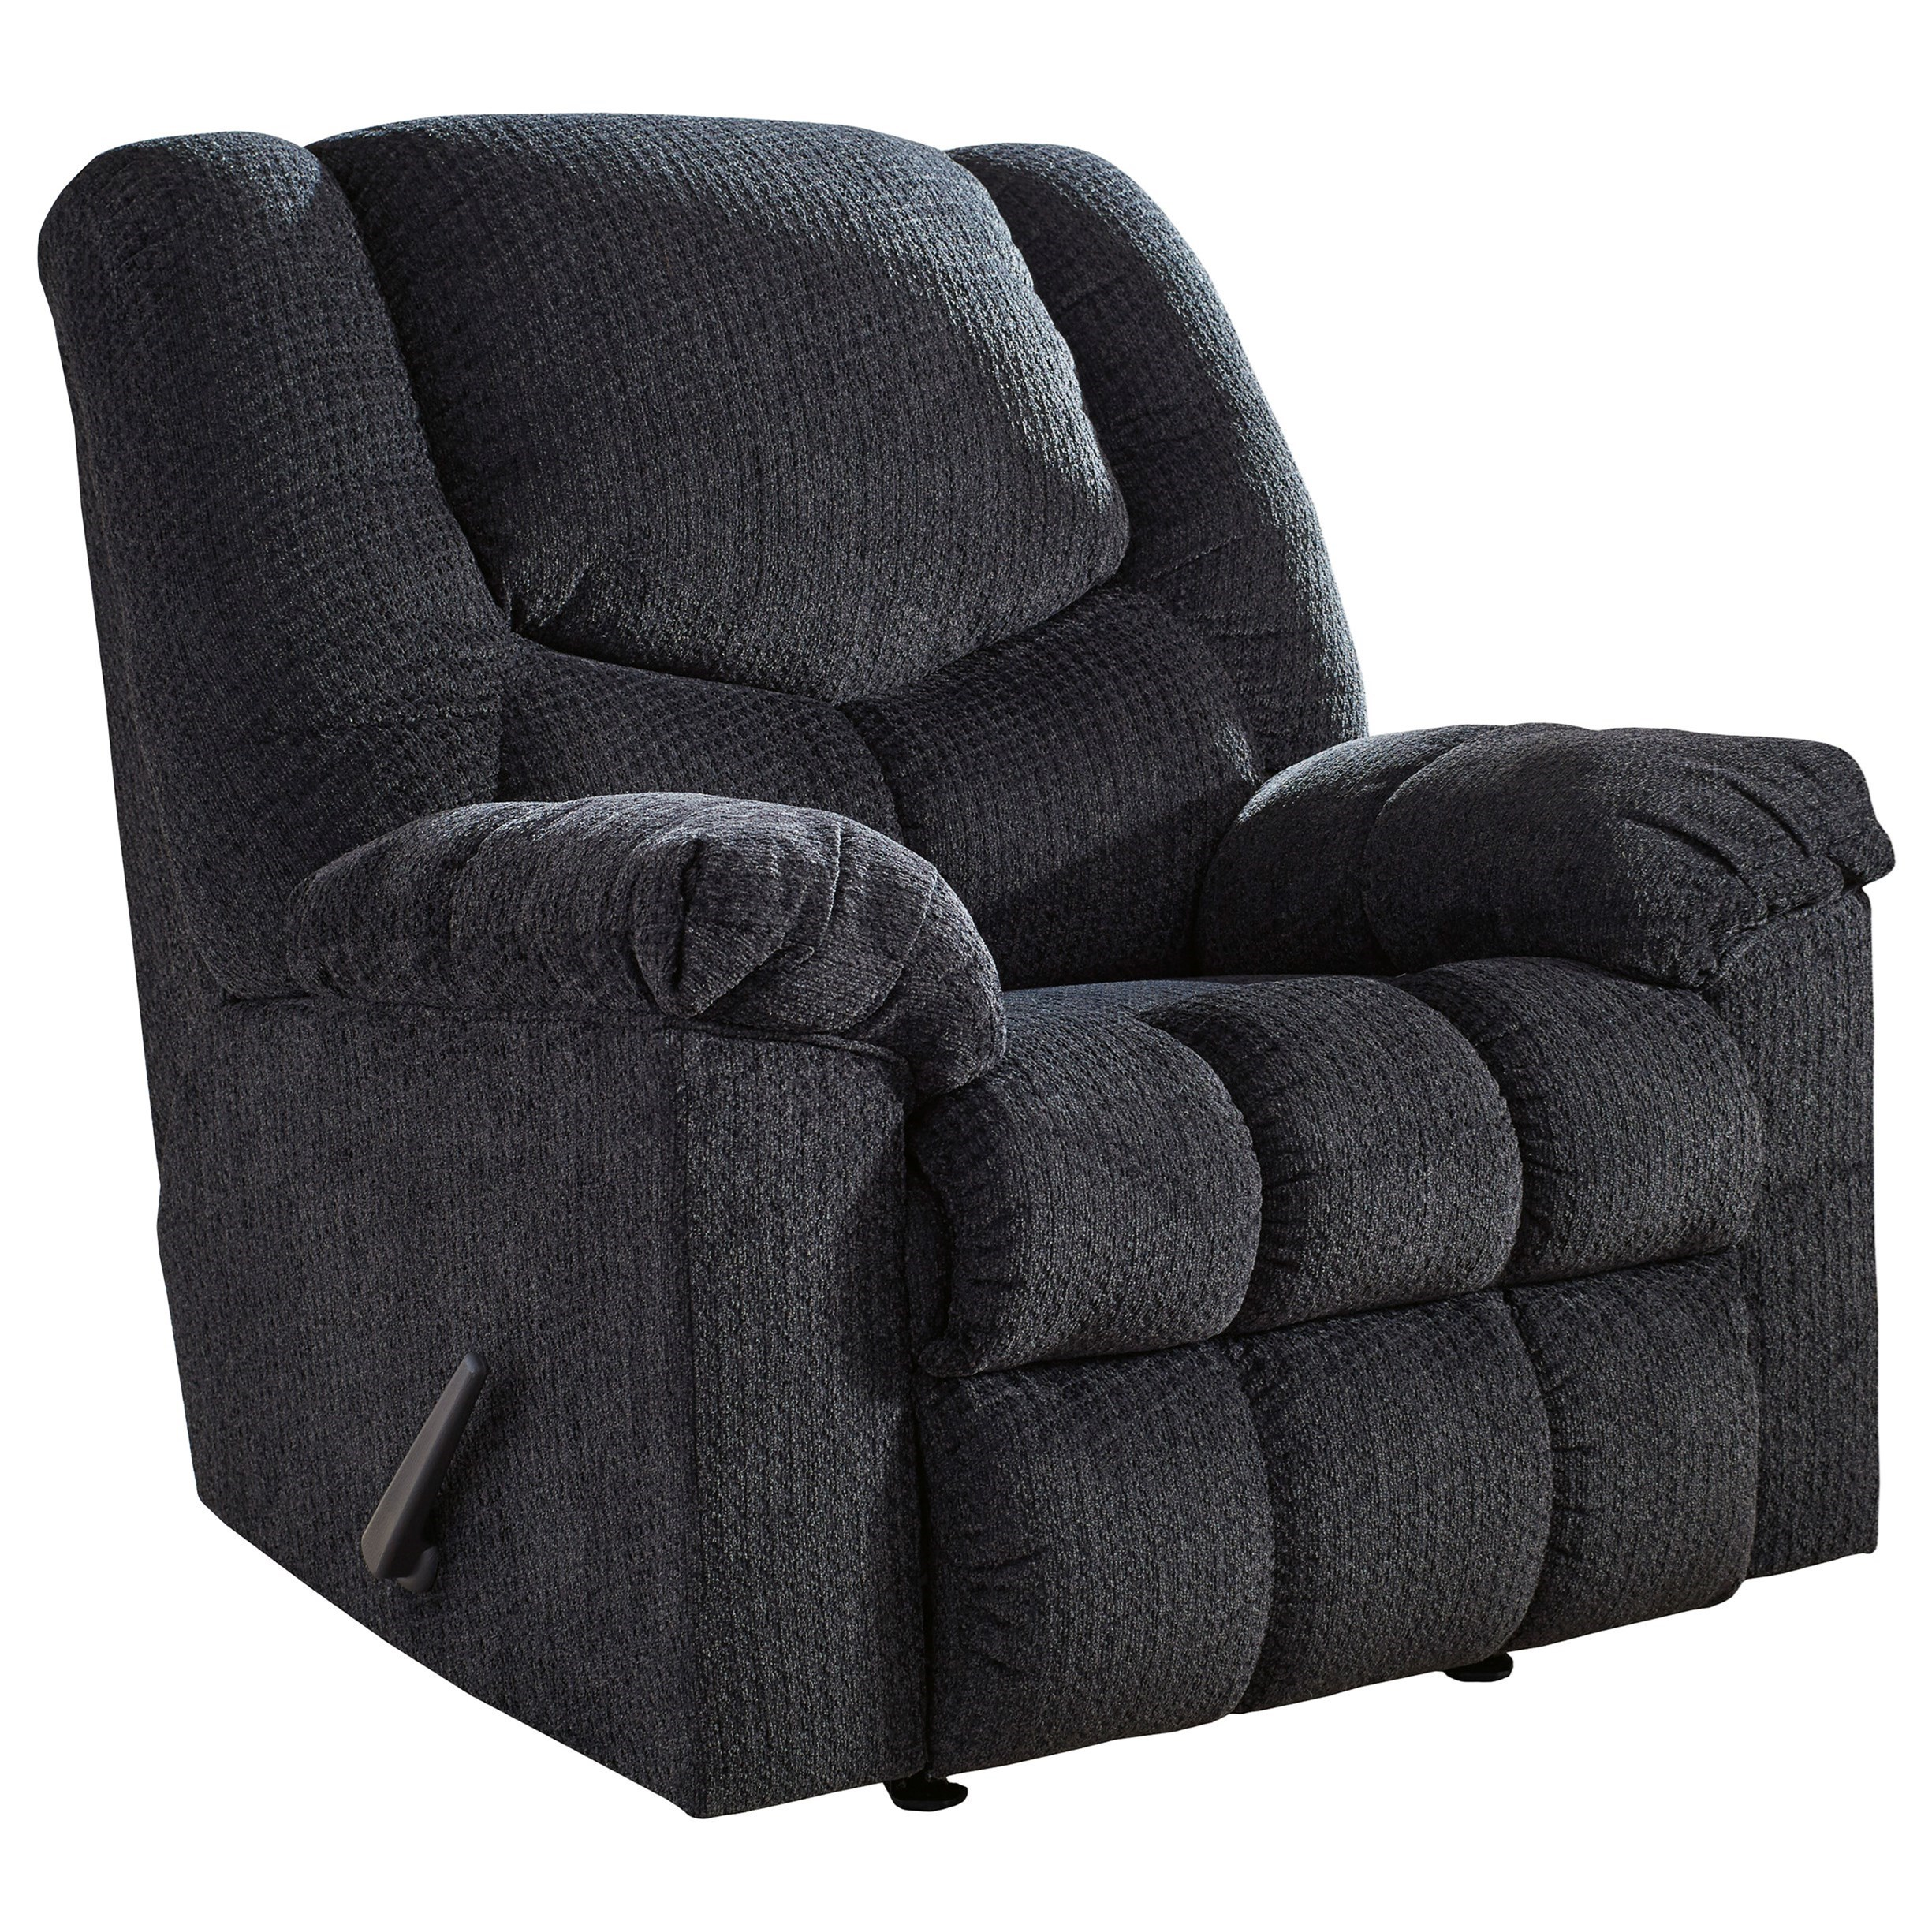 Signature Design by Ashley Turboprop Rocker Recliner - Item Number: 5000425